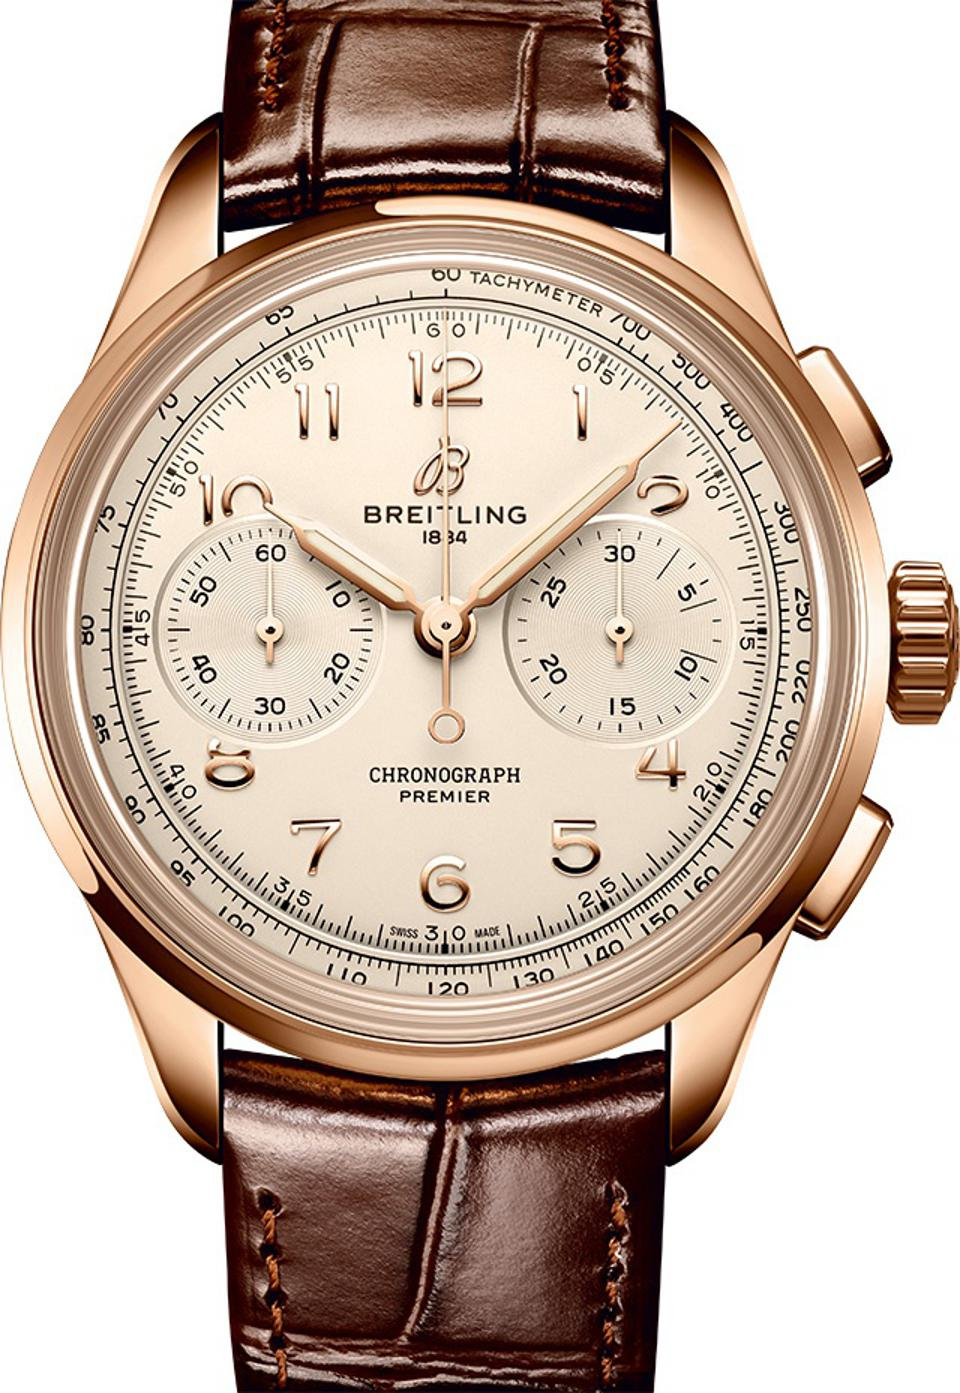 Breitling Heritage Premier Chronograph.